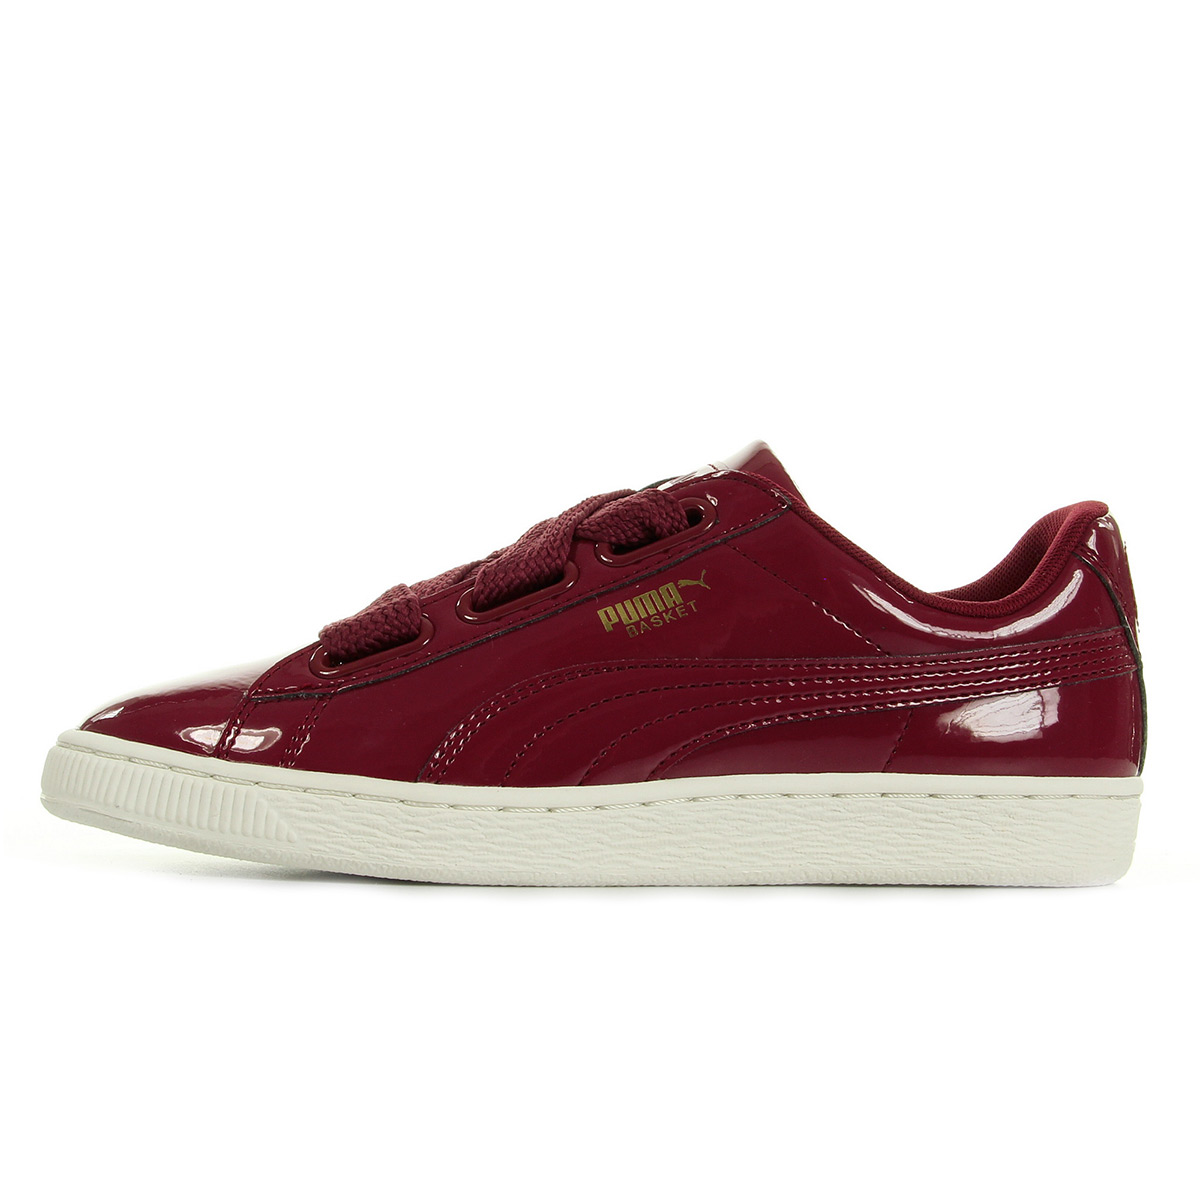 PUMA BASKET HEART red taille 40 D0giO48wd